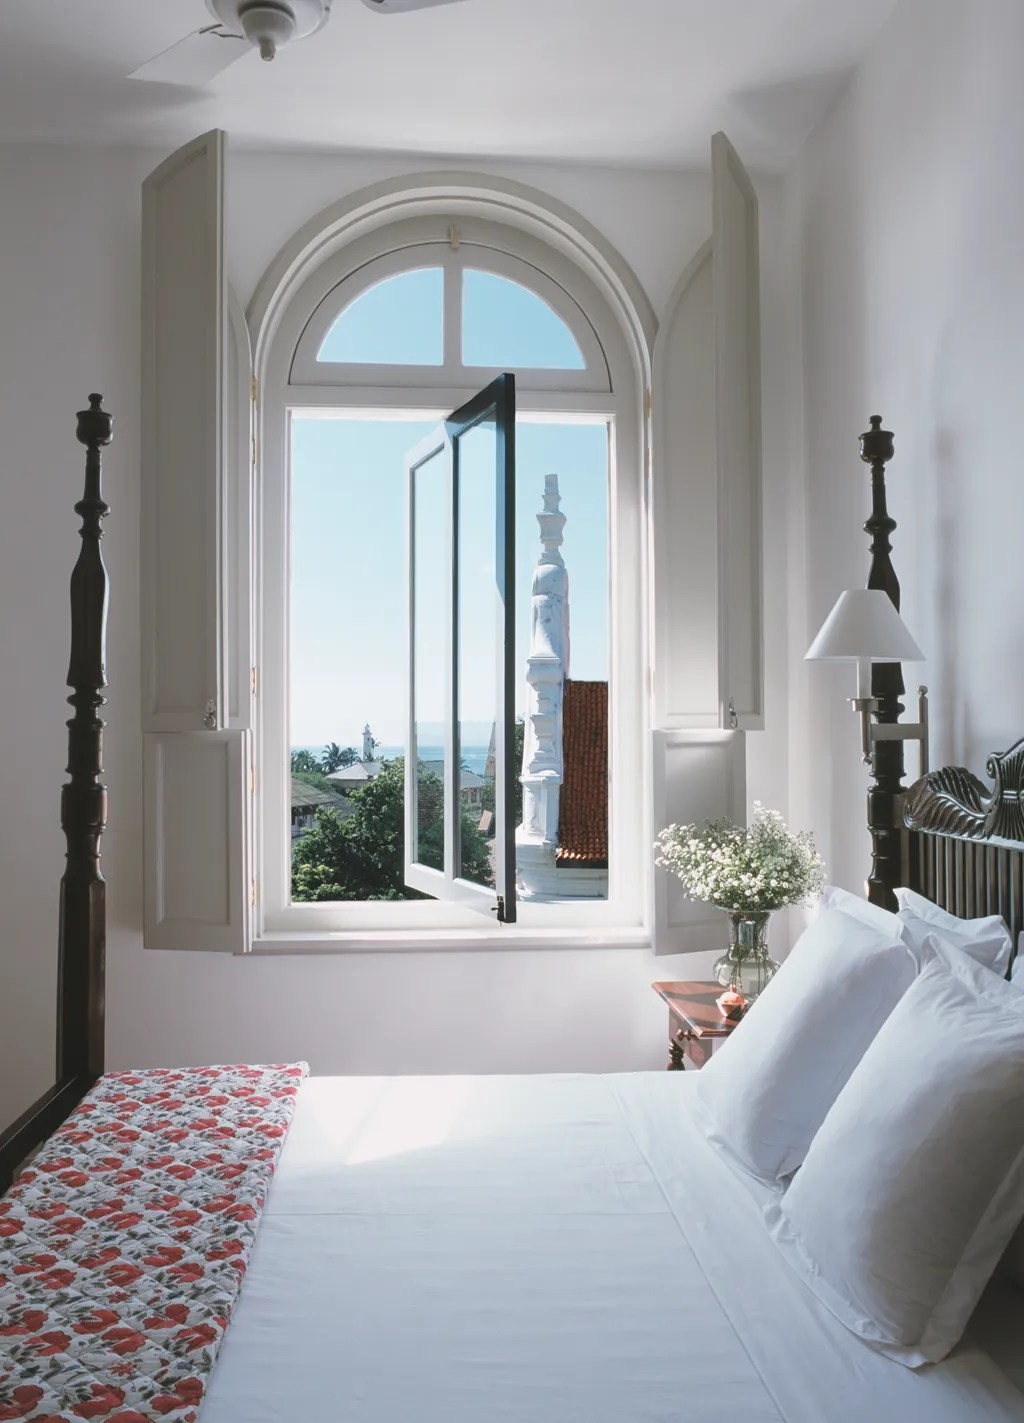 Rooms Views - Cond Nast Traveler